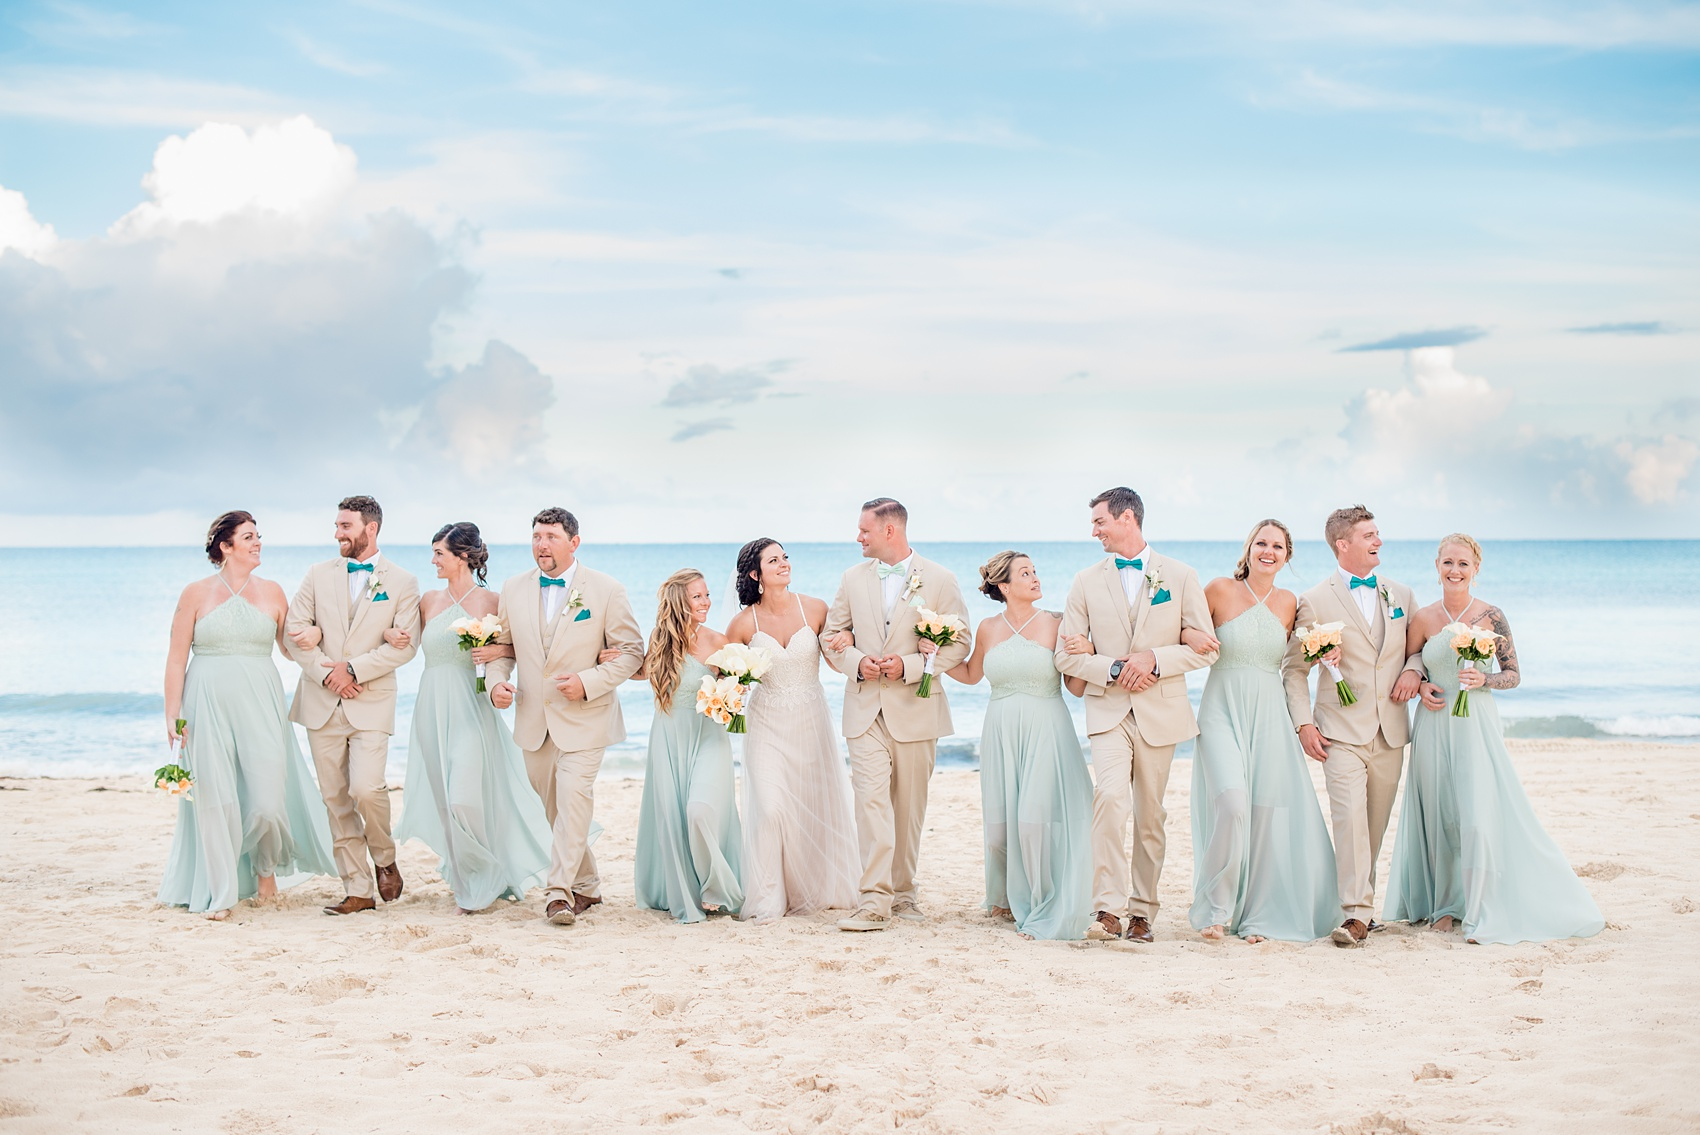 Mikkel Paige Photography photos from a wedding at Grand Paraiso, Mexico, Playa del Carmen Iberostar resort. Picture of the bridal party in mint green gowns and groomsmen in tan suits walking on the beach.